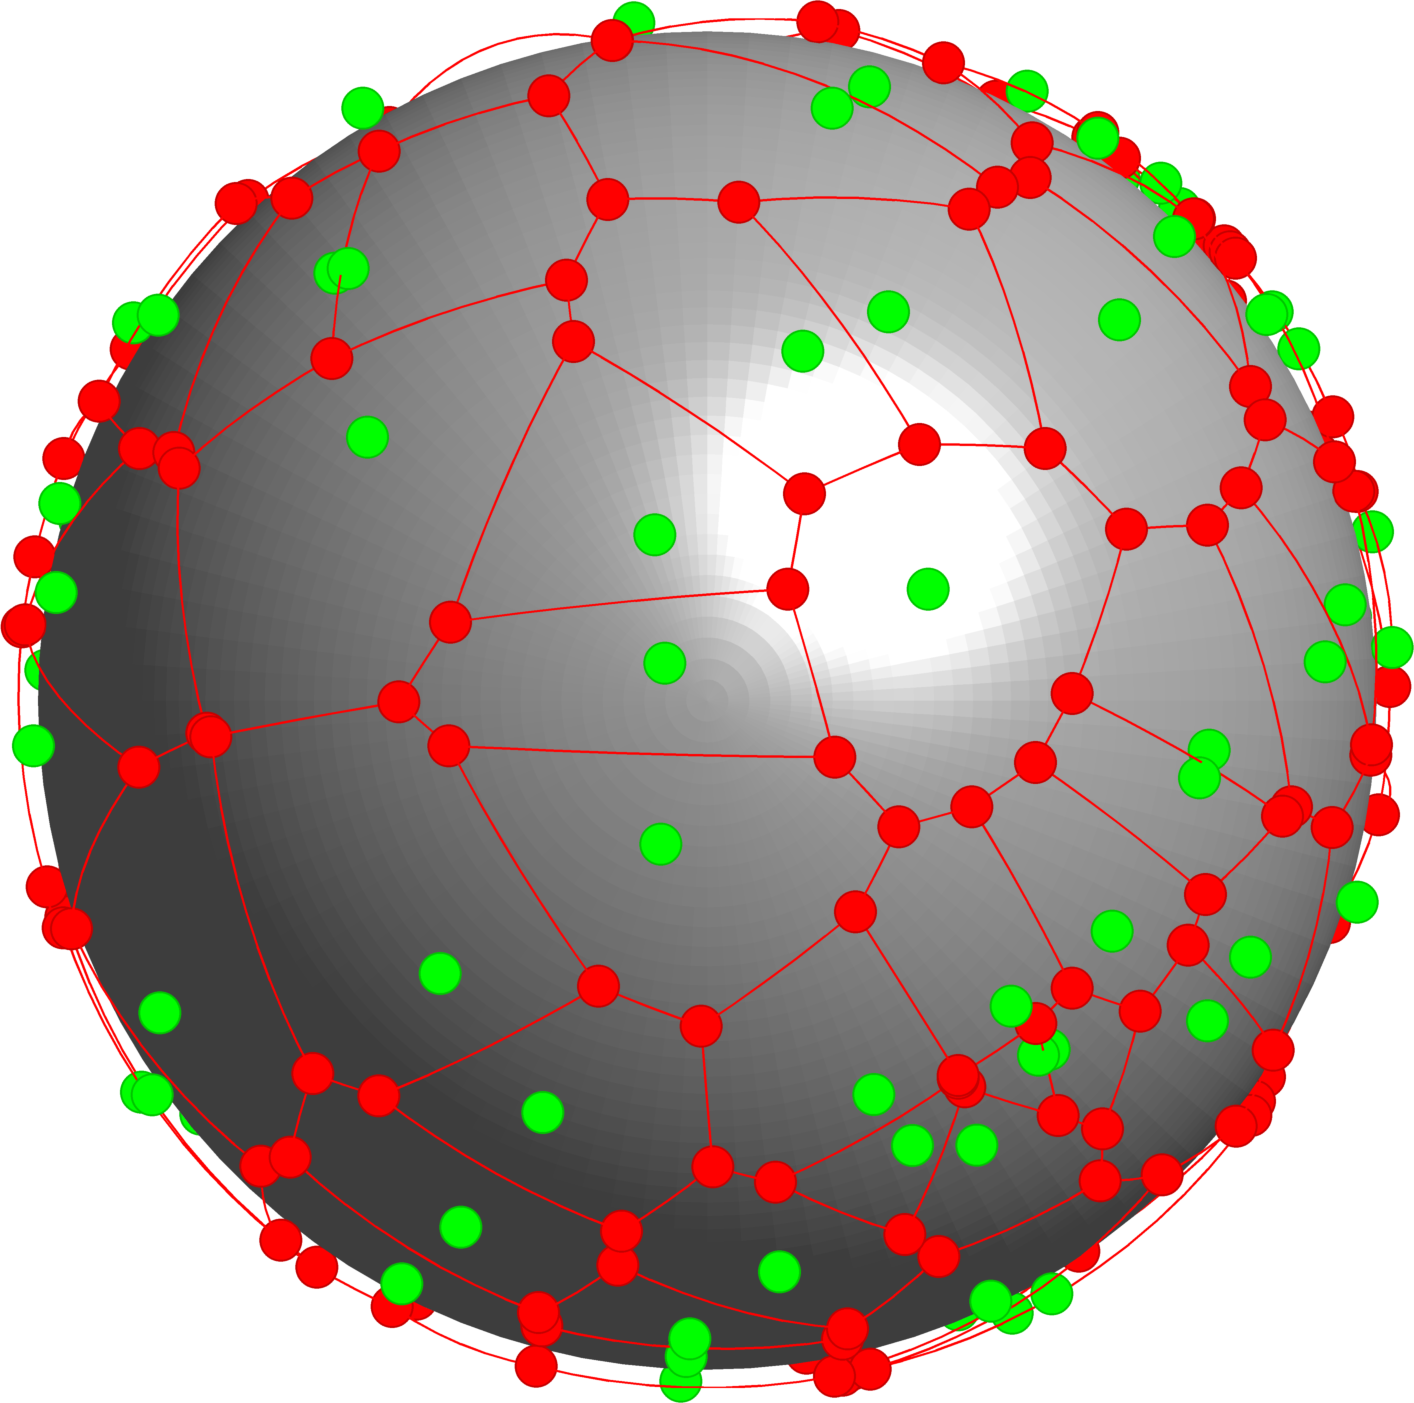 Voronoi diagrams on the sphere | Beni Bogoşel's blog